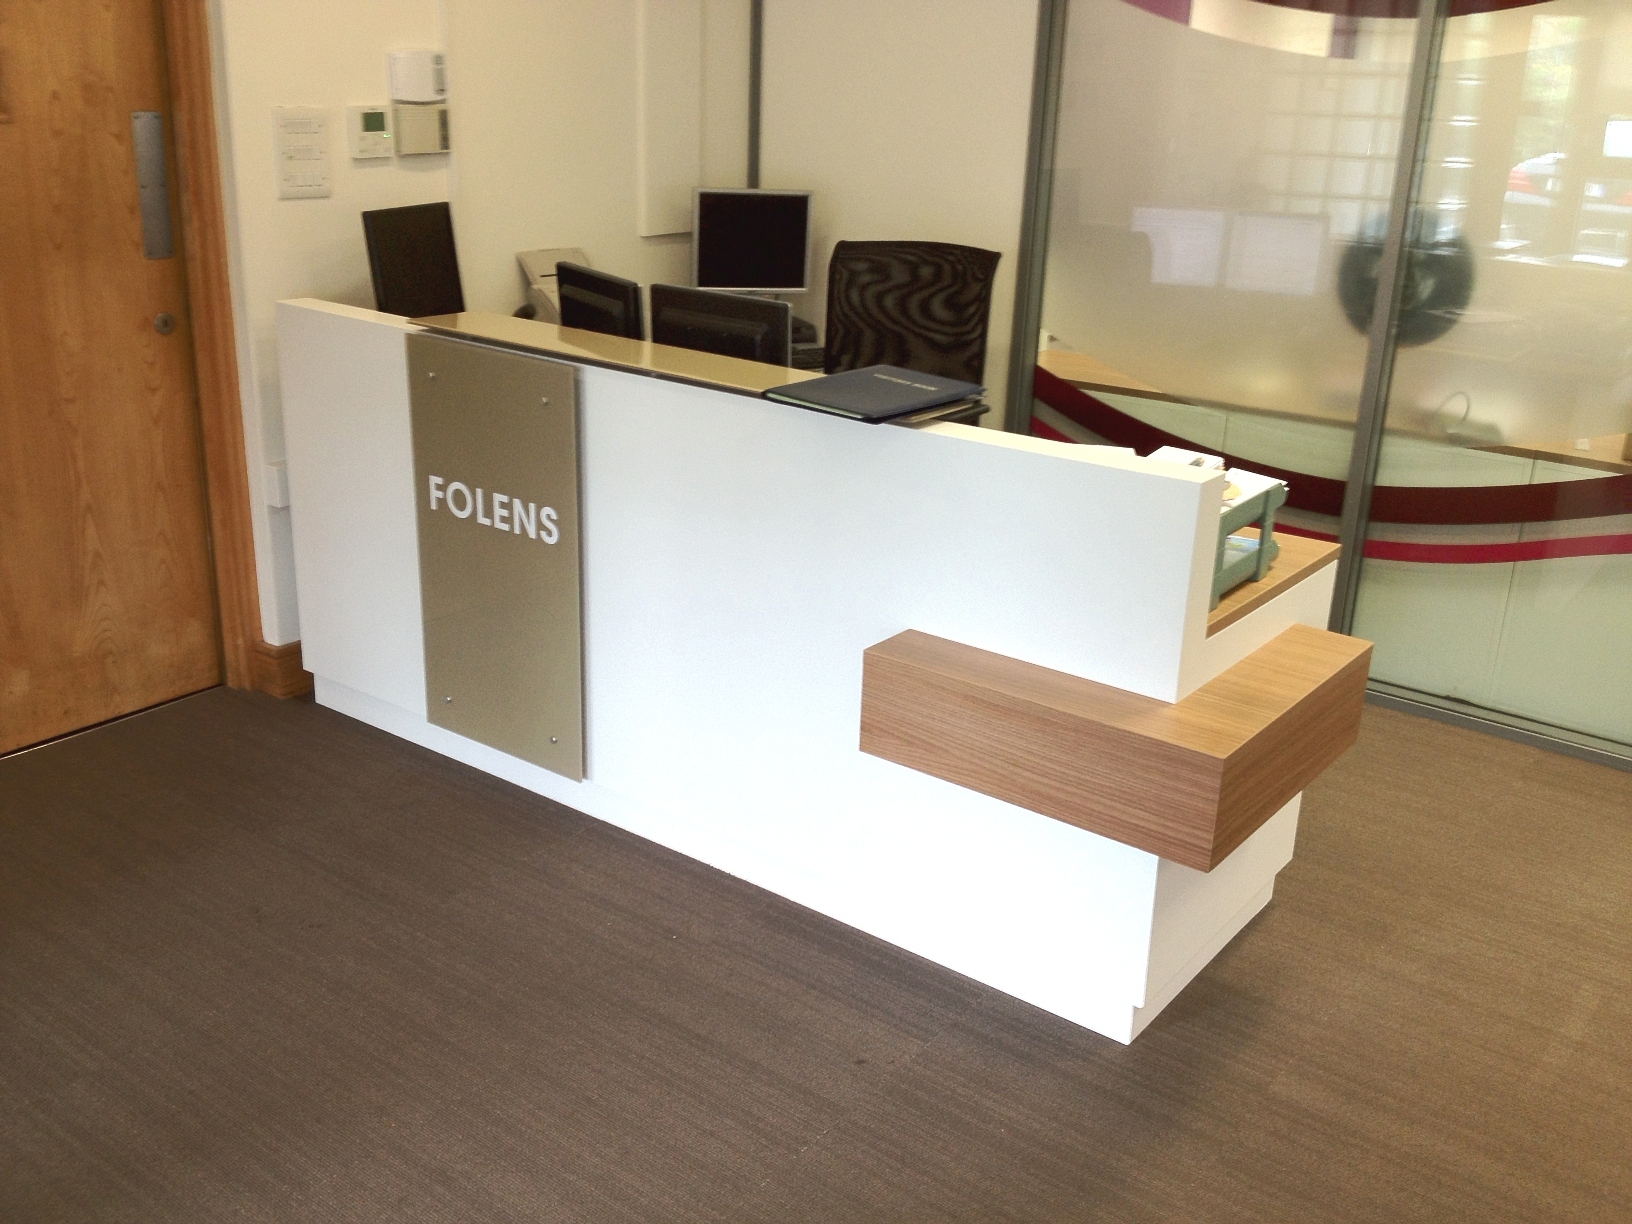 Folens Reception Desk